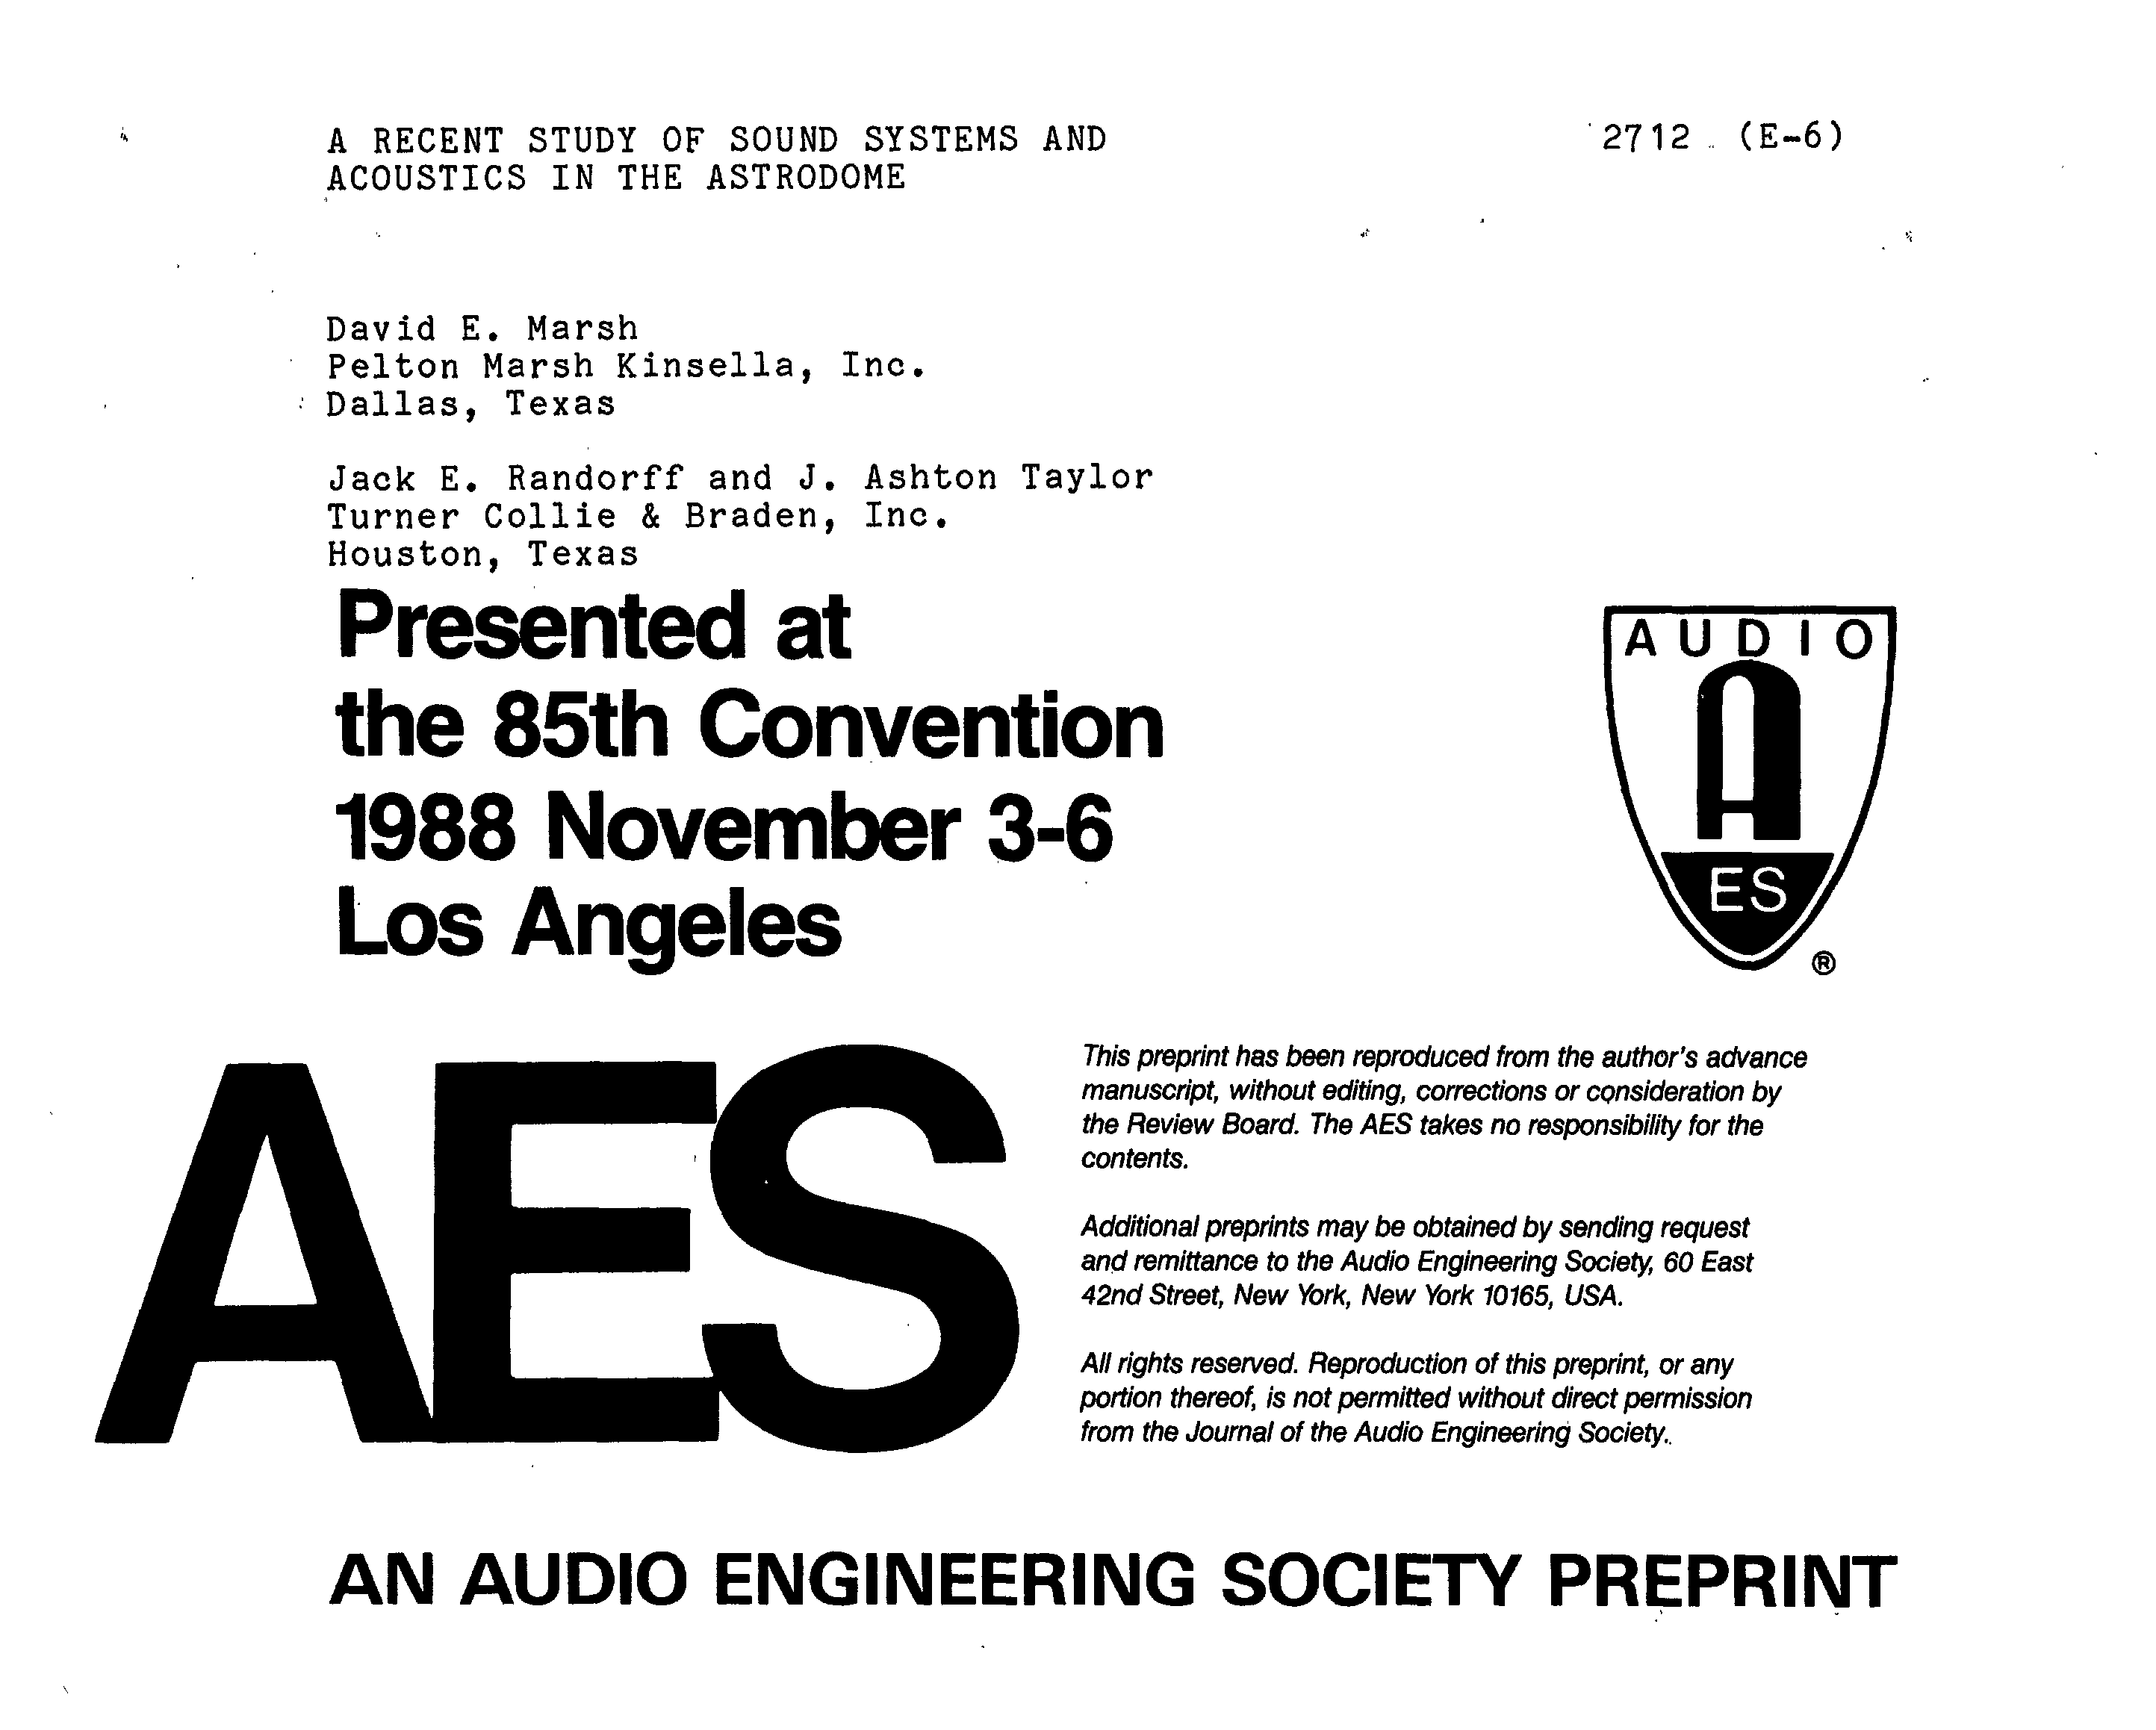 Aes E Library A Recent Study Of Sound Systems And Acoustics In The Xl Axis Rp 50000 Astrodome